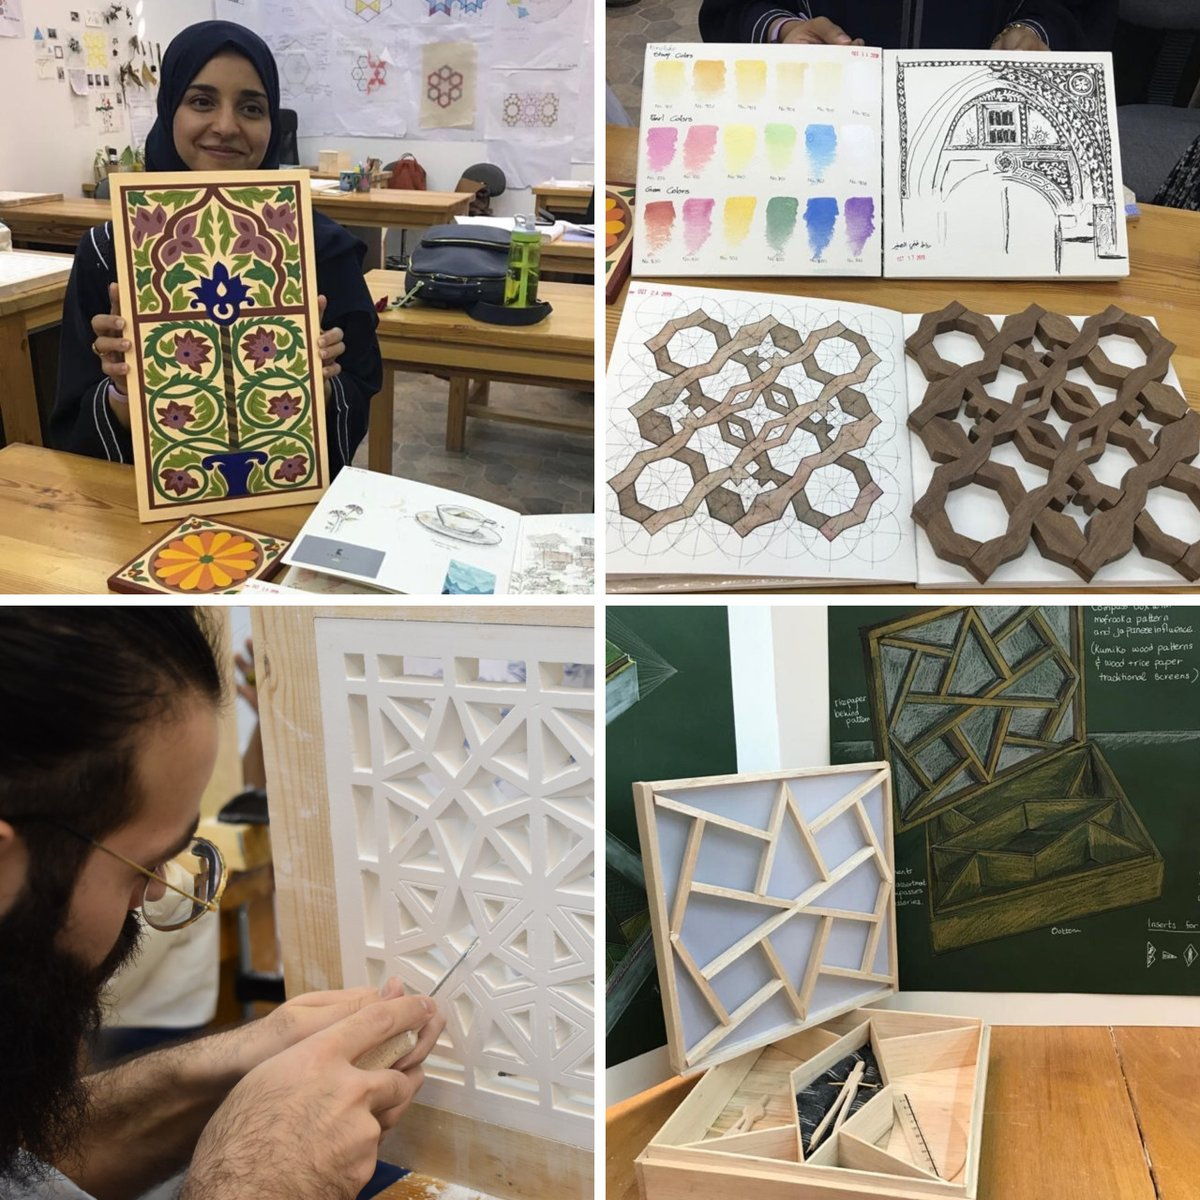 School Of Traditional Arts On Twitter Calling All Our Friends Artists And Designers In Saudi Arabia Last Few Days To Apply To Our One Year Programme In Traditional Arts Product Design At